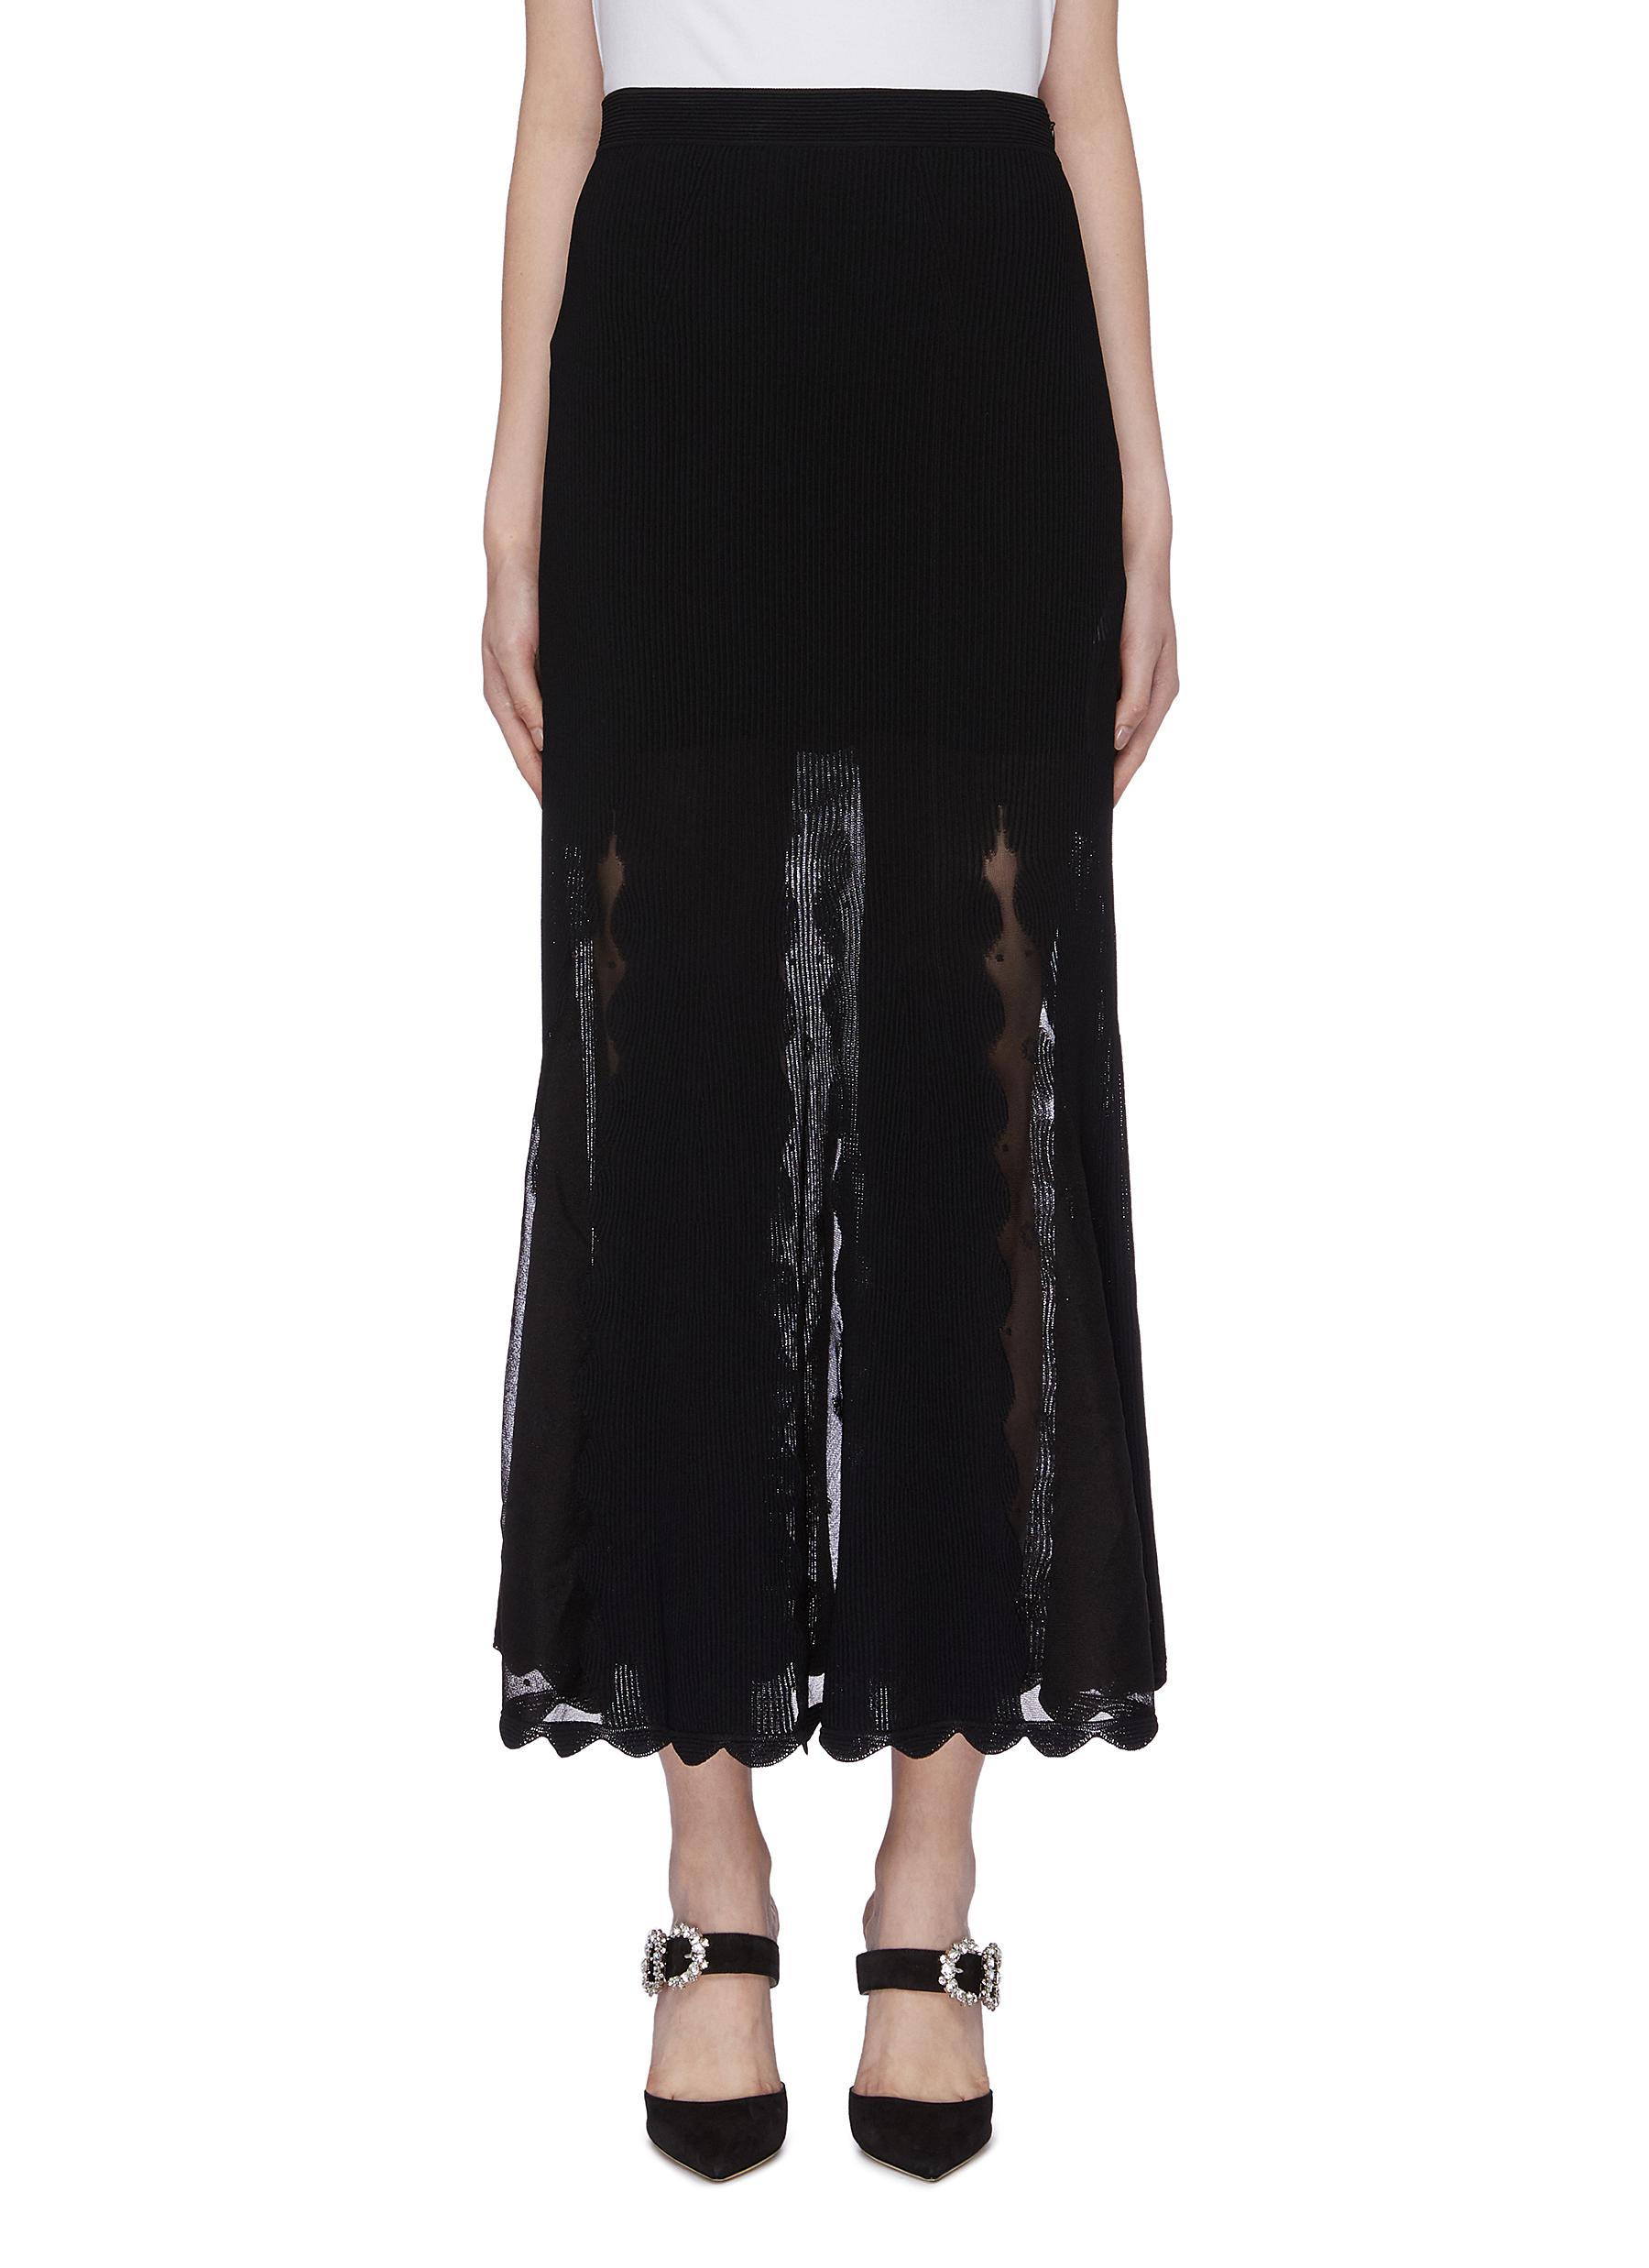 Scalloped mesh panel rib knit skirt by Alexander Mcqueen